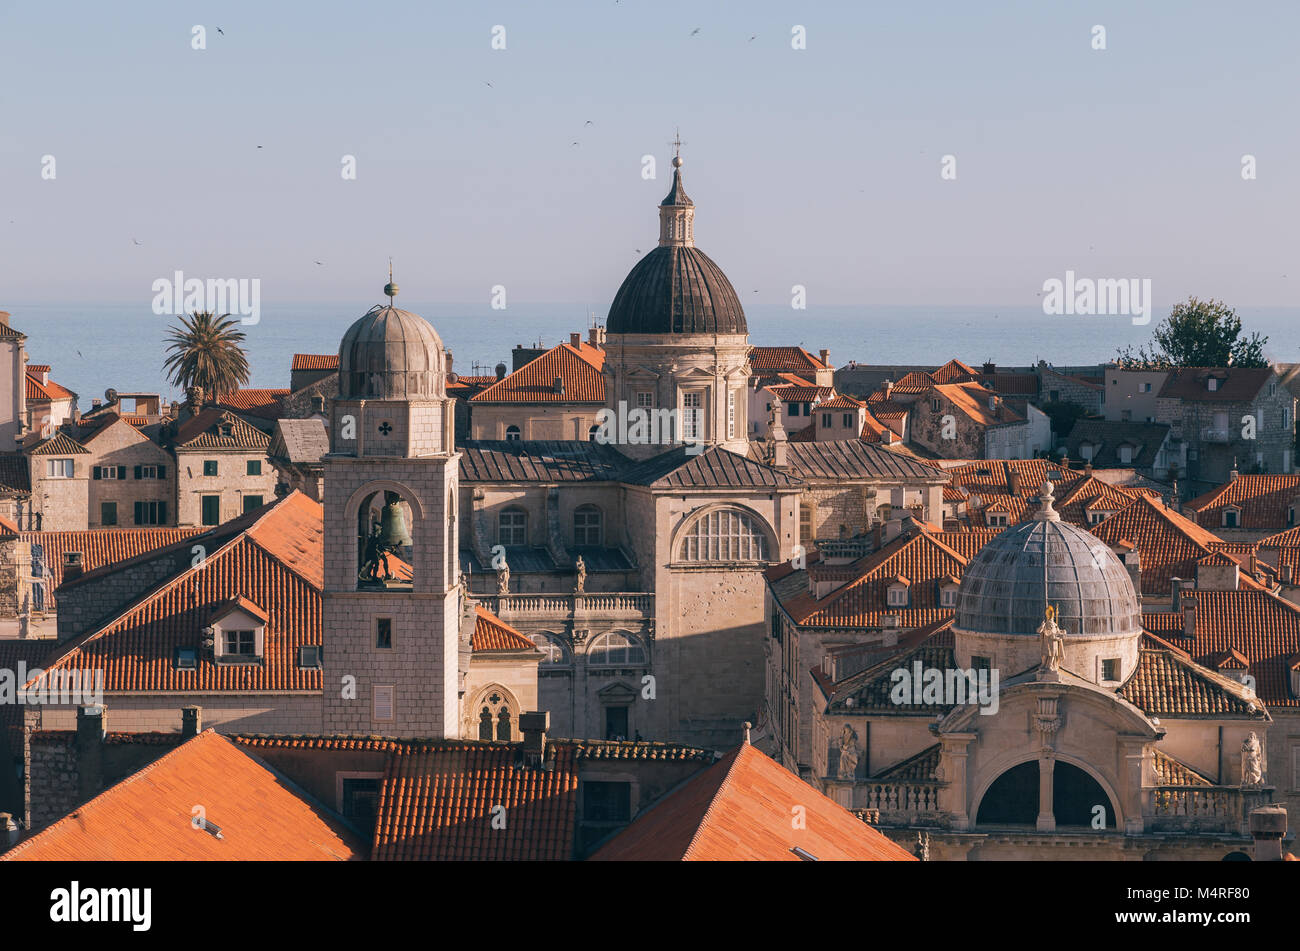 Classic view of the historic town of Dubrovnik, one of the most famous tourist destinations in the Mediterranean - Stock Image